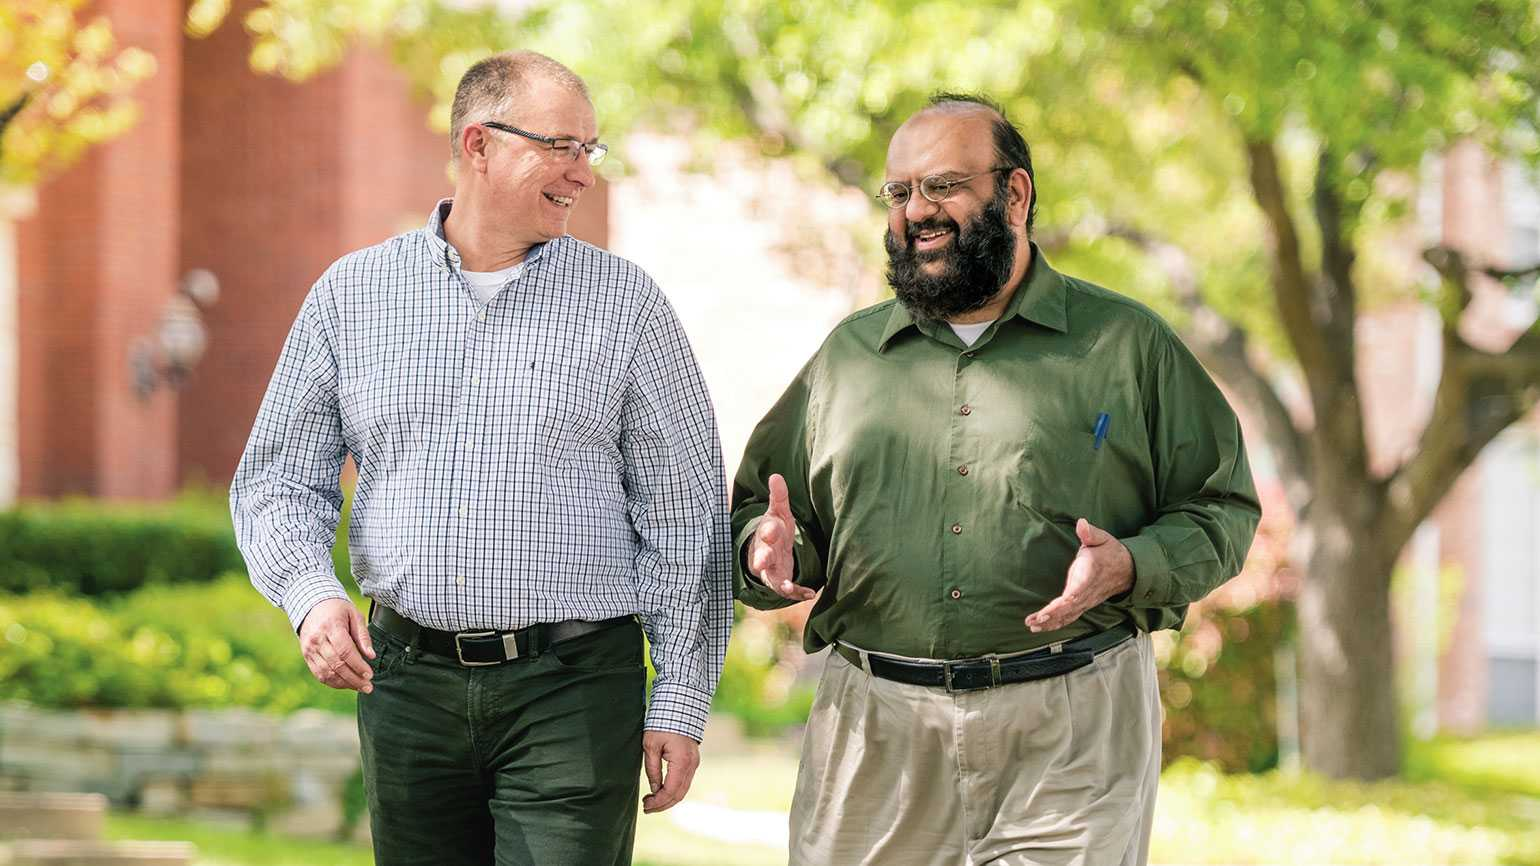 A Christian Pastor And A Muslim Imam Find Friendship And Common